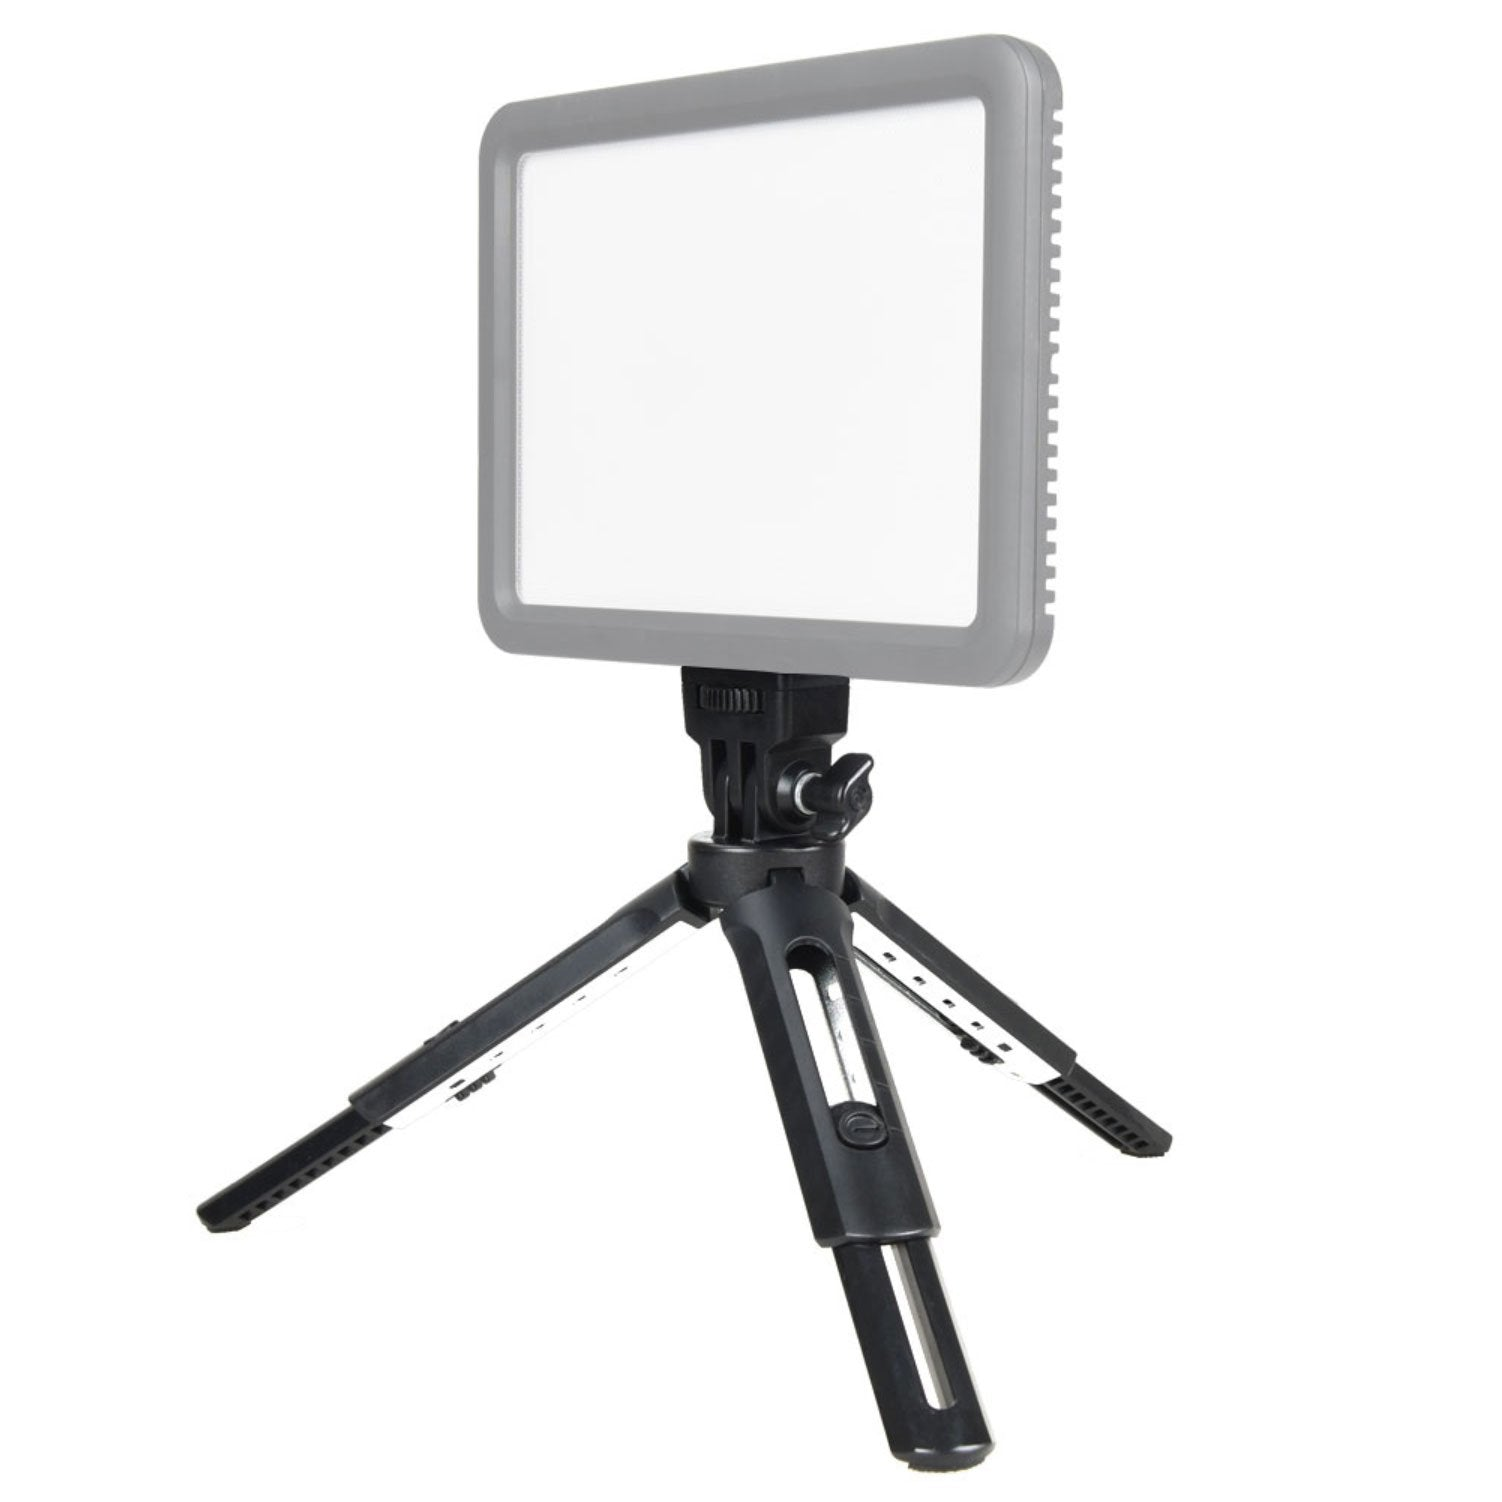 Mini Tabletop Desk Tripod Stand for Flash Lighting and Cameras